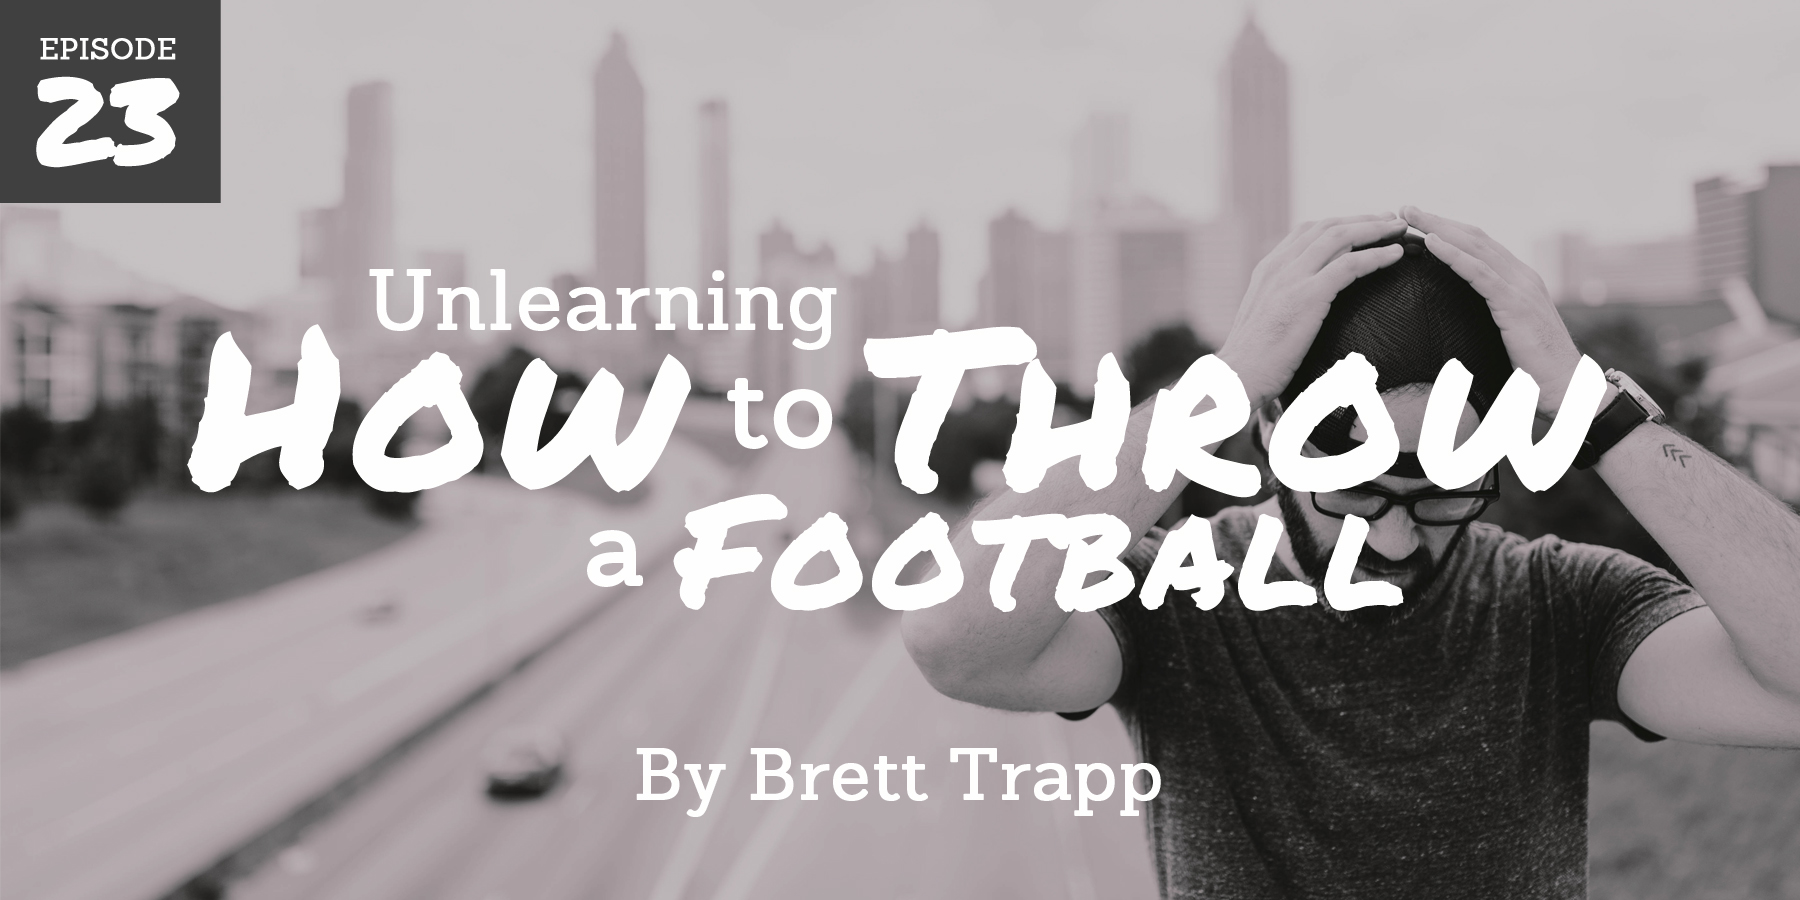 Inexplicably, Brett unlearns how to throw a football...